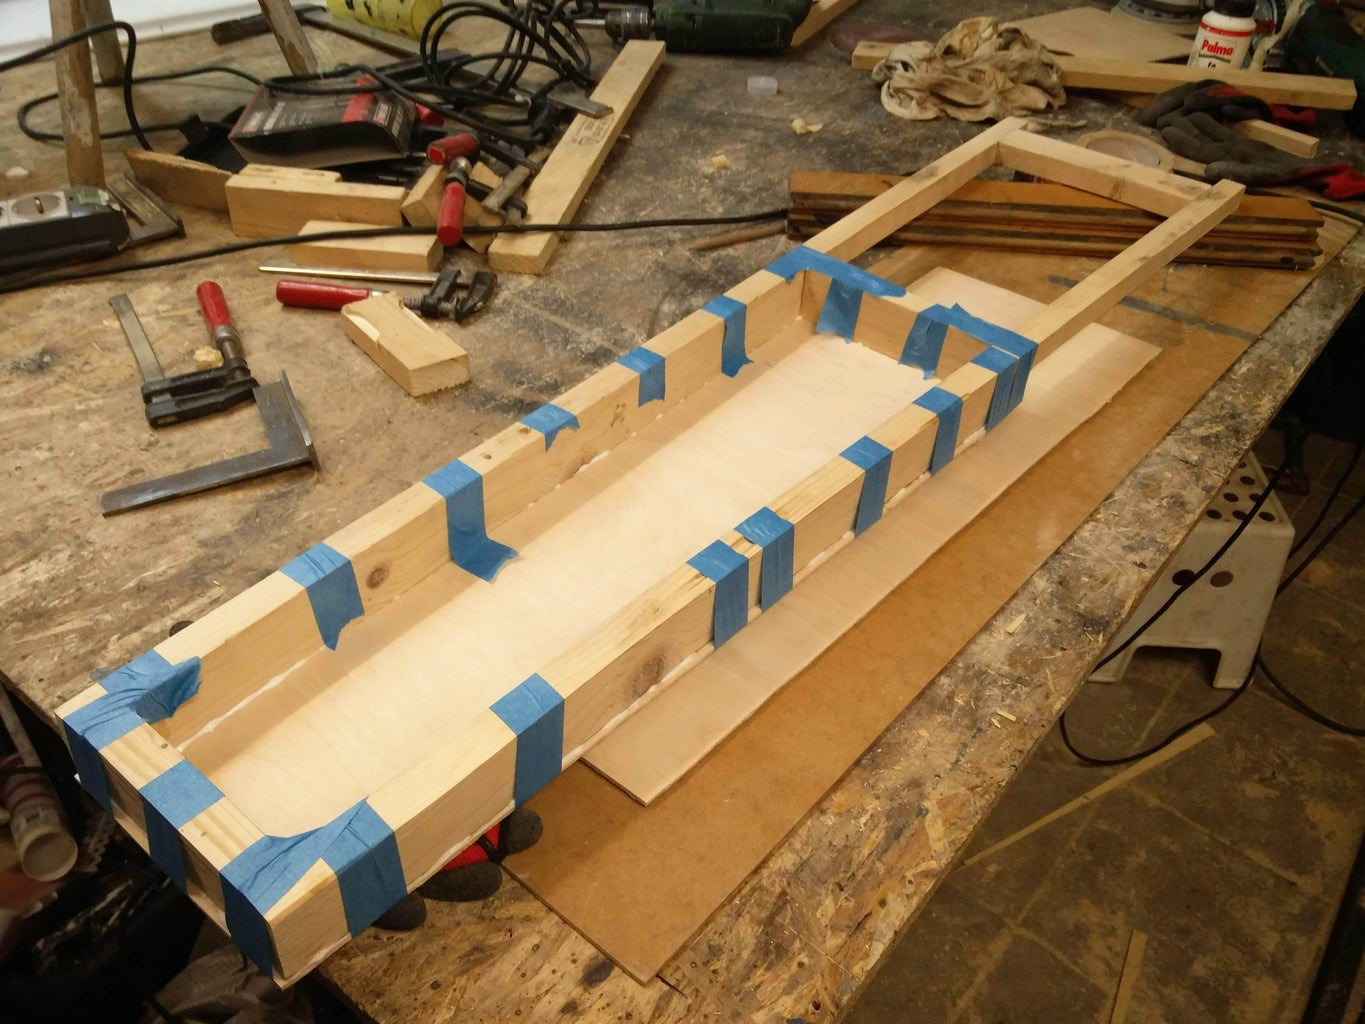 Cut Out the Back of the Instrument and Glue It Together